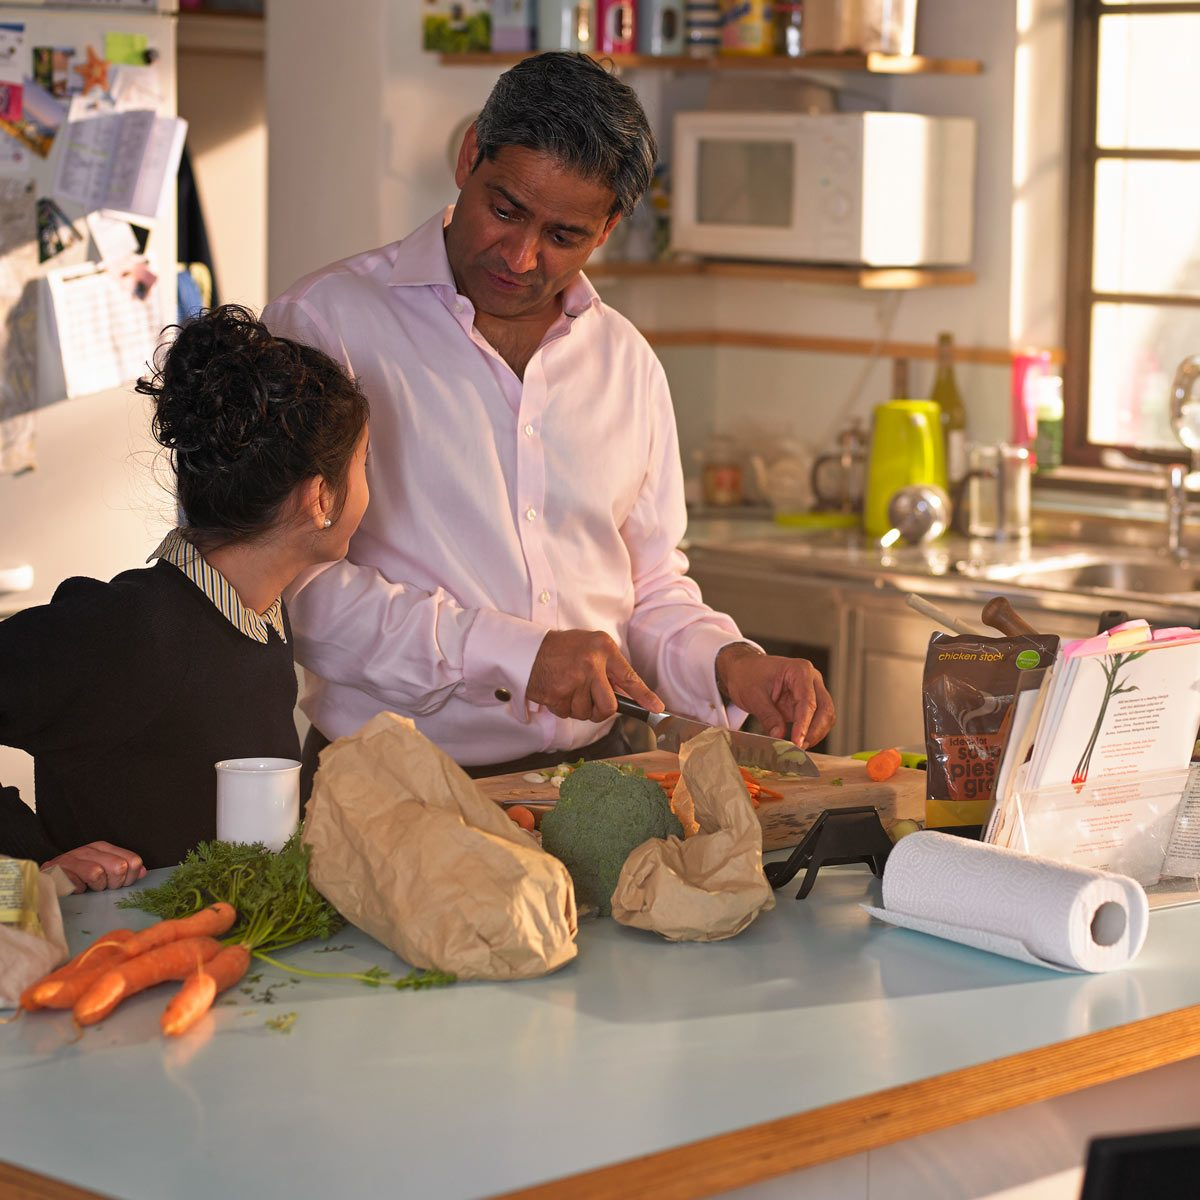 Family preparing a meal from a recipe on an iPad paper towel veggies